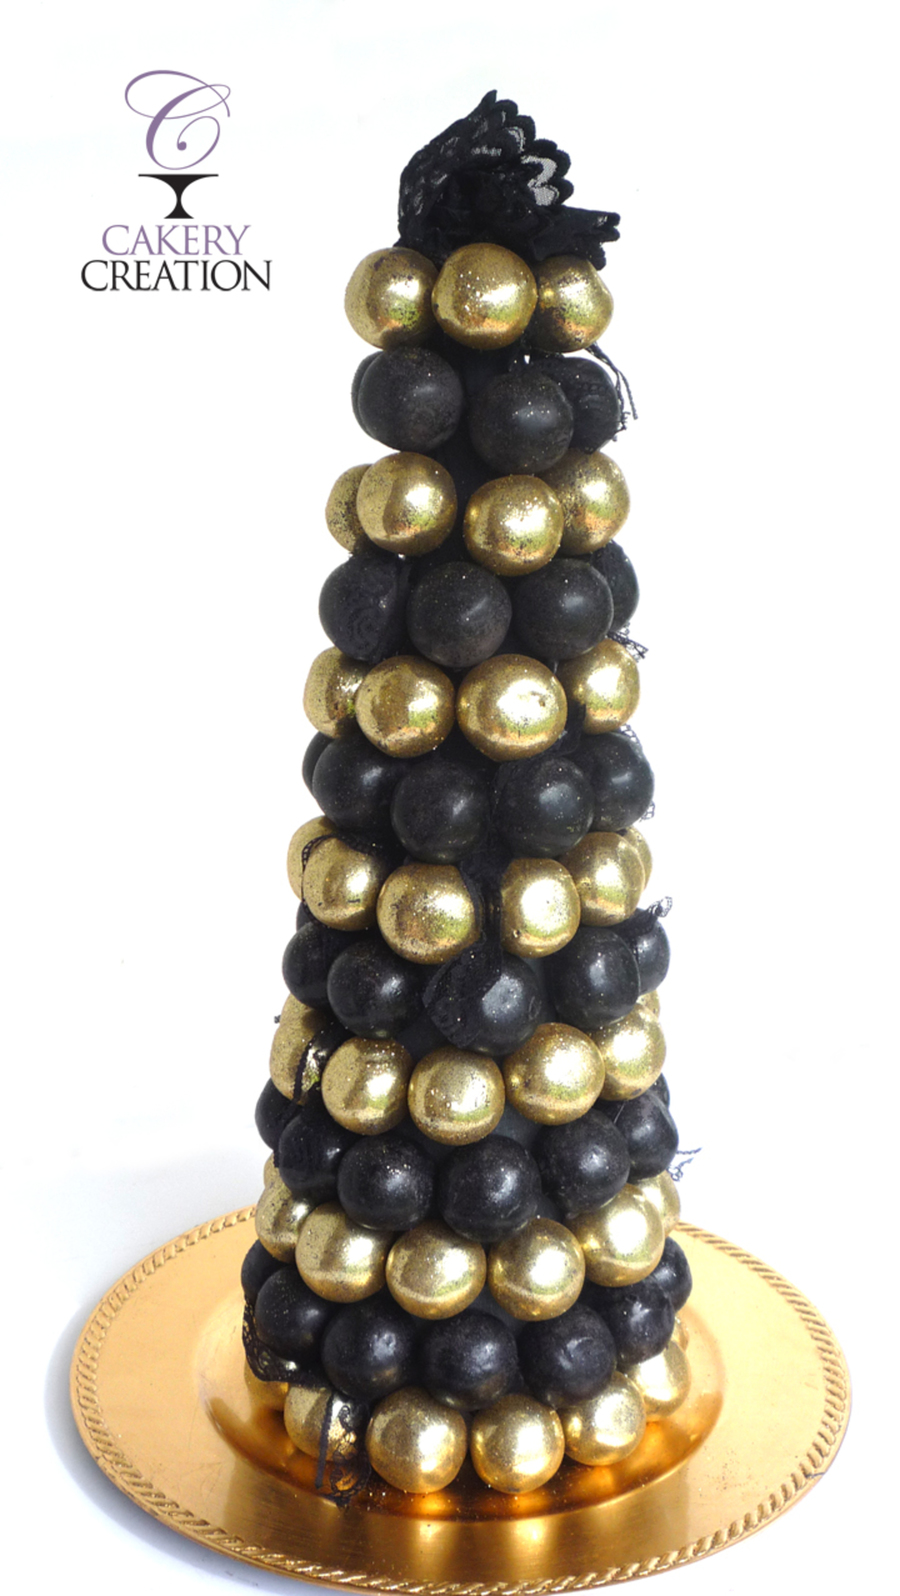 Great Gatsby Inspired Cake Ball Tree In Black And Gold on Cake Central